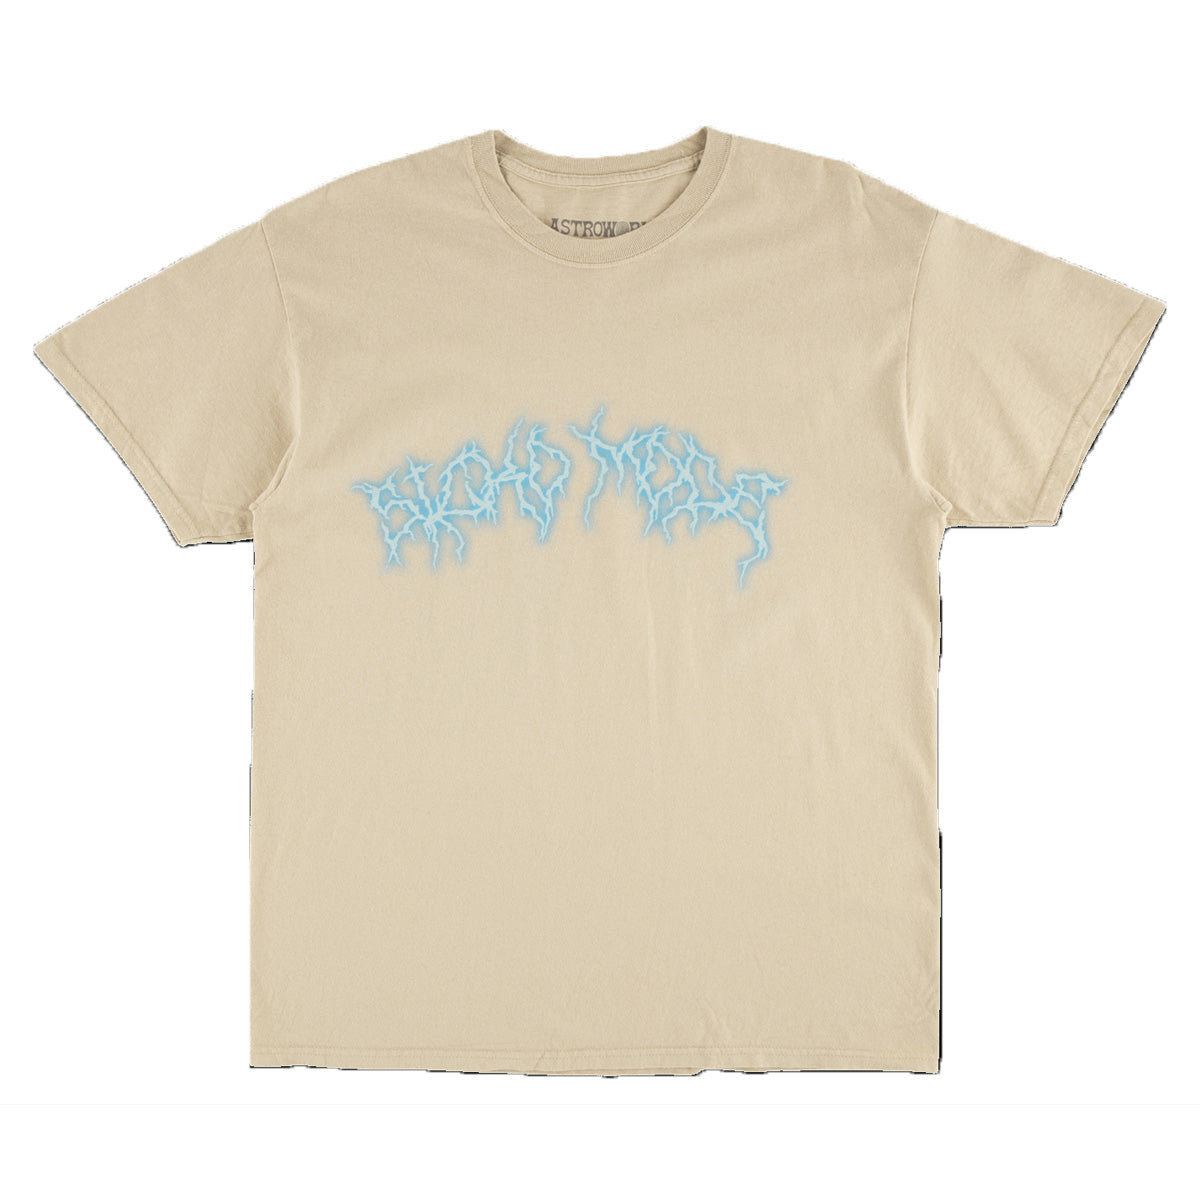 Sicko Mode Tee - Cream